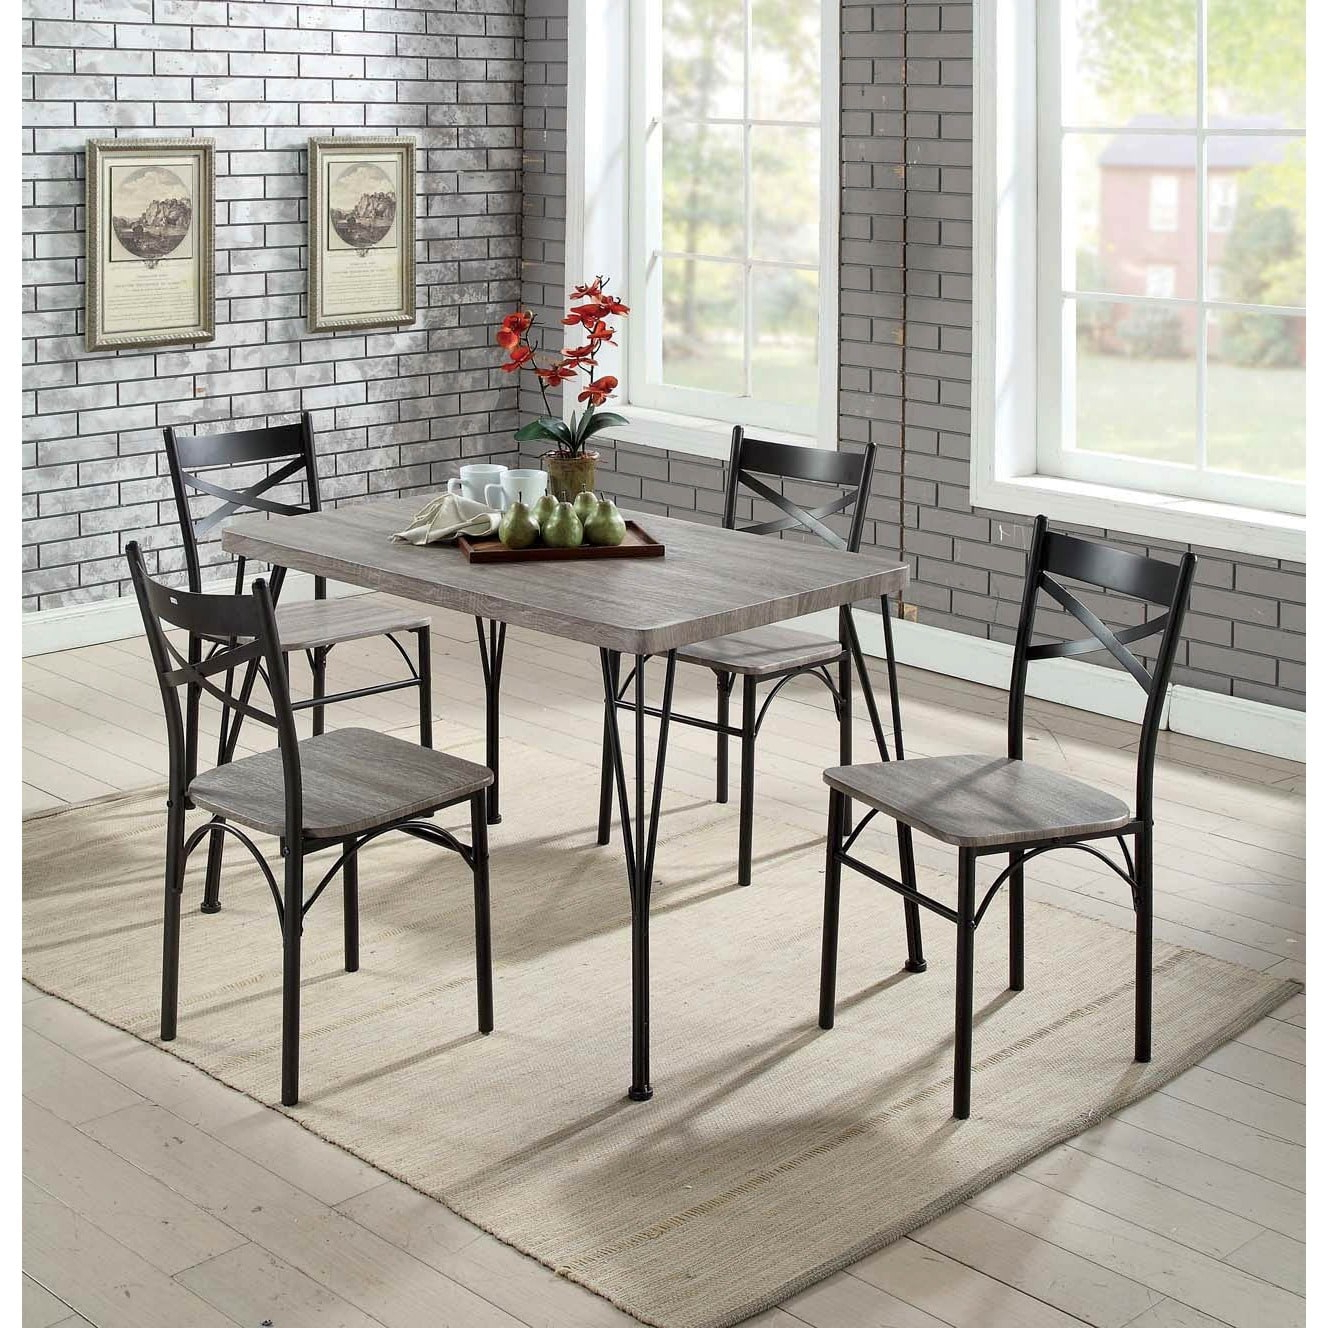 Most Recent Furniture Of America Hathway Industrial 5 Piece Dark Bronze Small With Bearden 3 Piece Dining Sets (View 8 of 25)